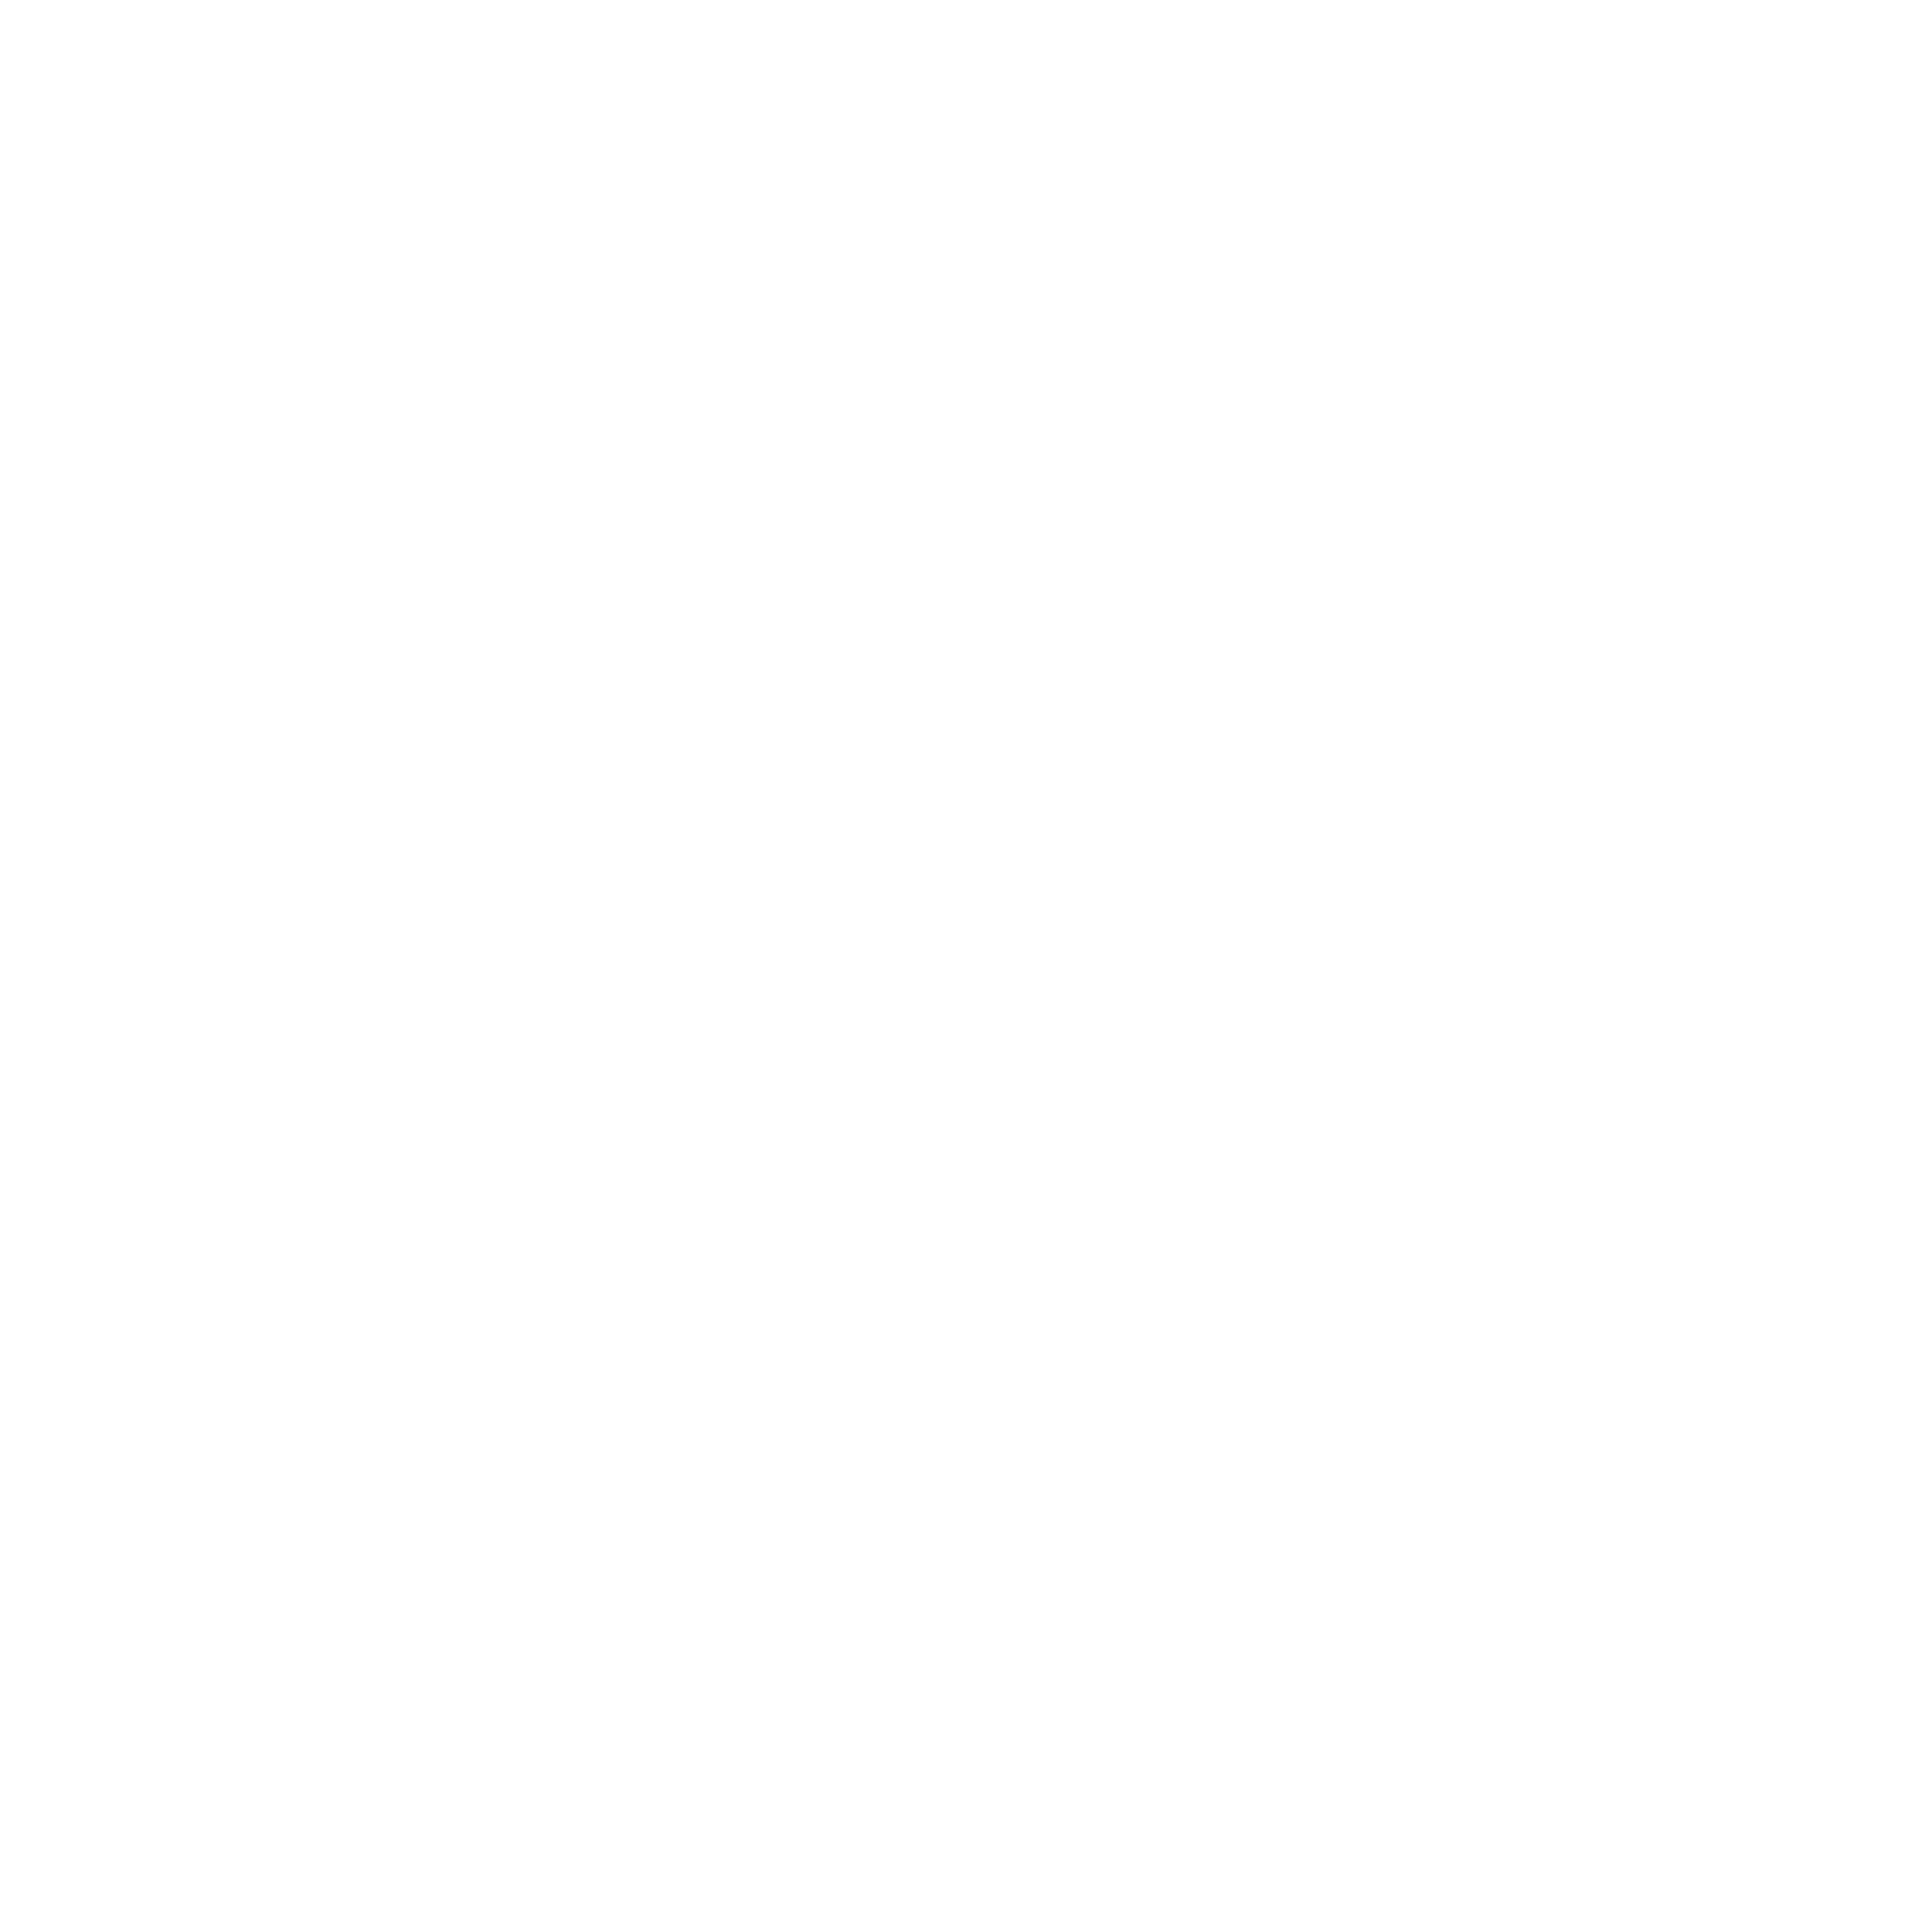 I am a wonderful logo design and creative logo